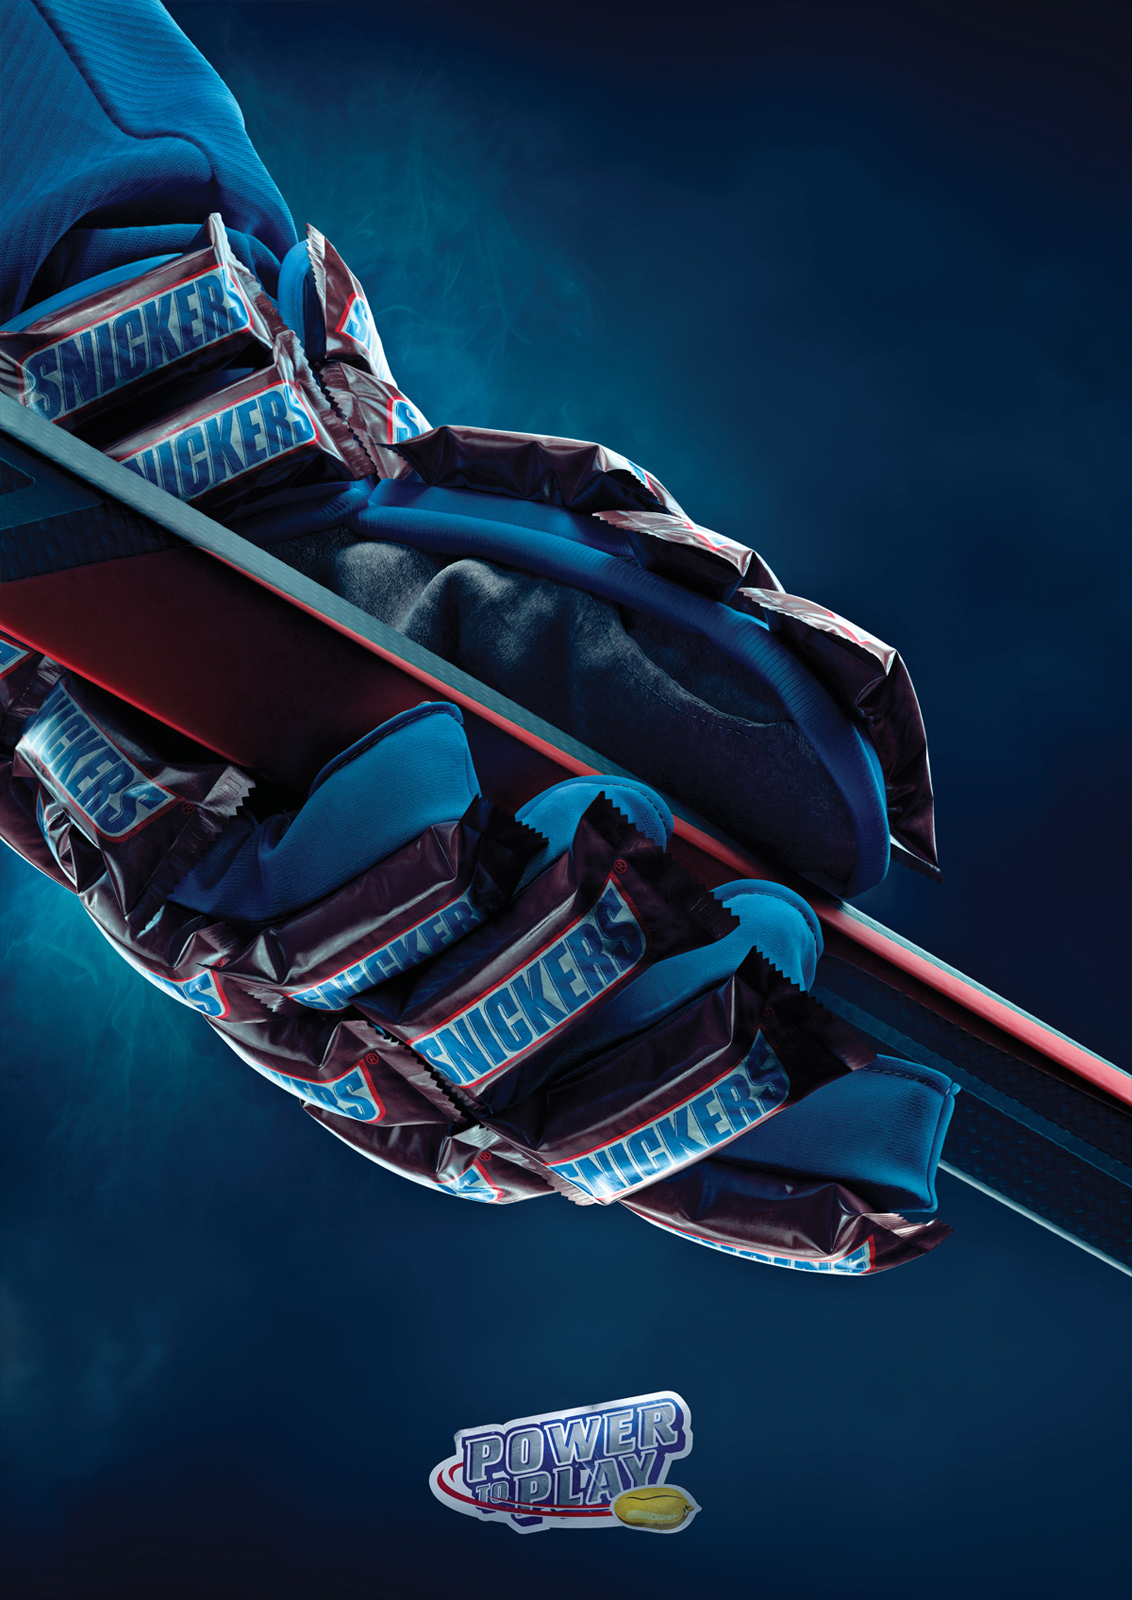 Snickers Print Advert By BBDO: Ice-hockey glove | Ads of ...